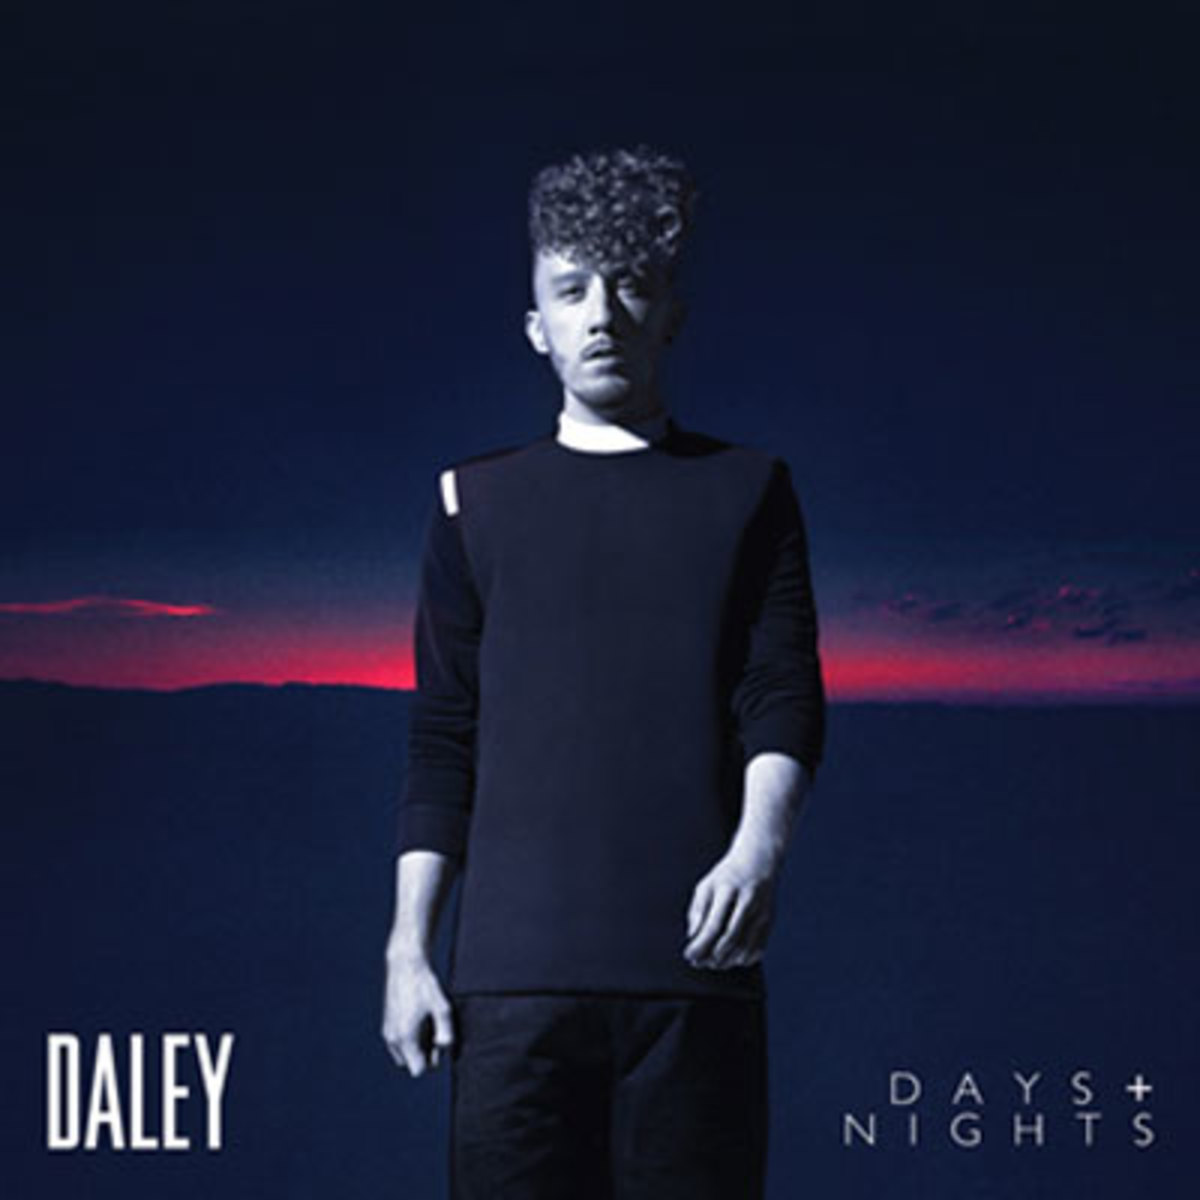 daley-daysnights.jpg